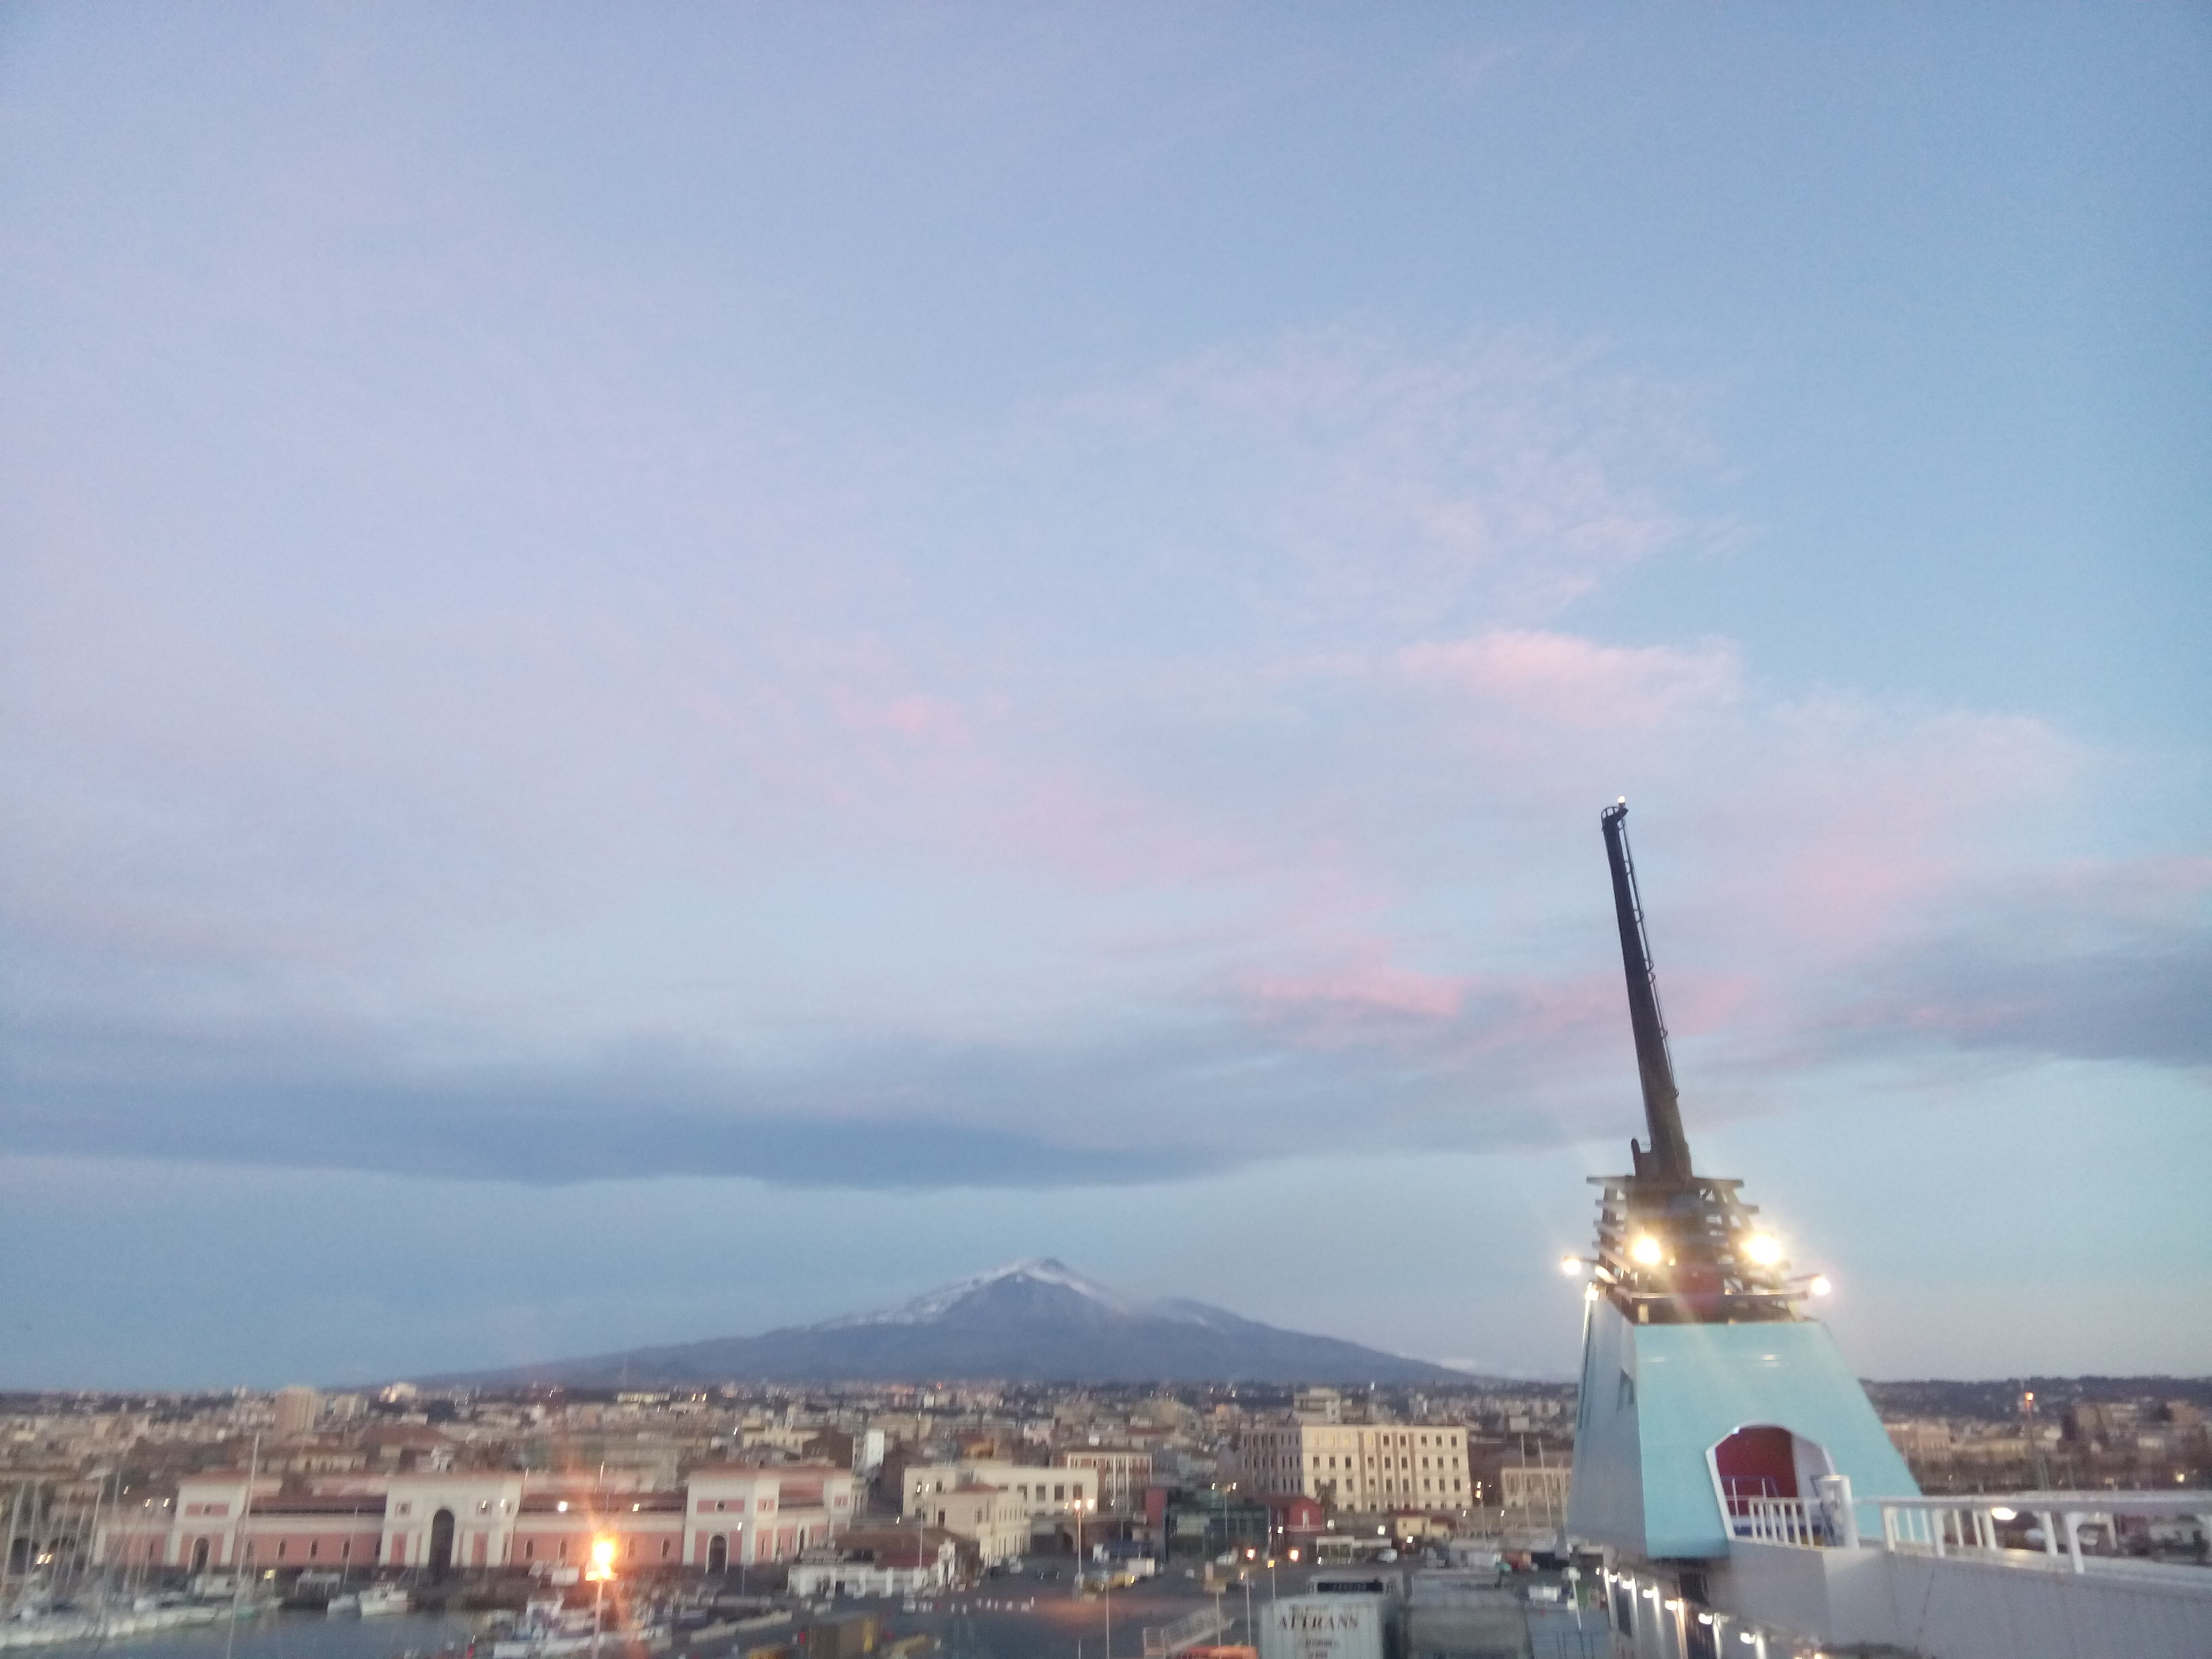 Pink and blue sky, with a sandy-coloured city (Catania) in the foreground and a dark snow-capped mountain in the background (Mt Etna)